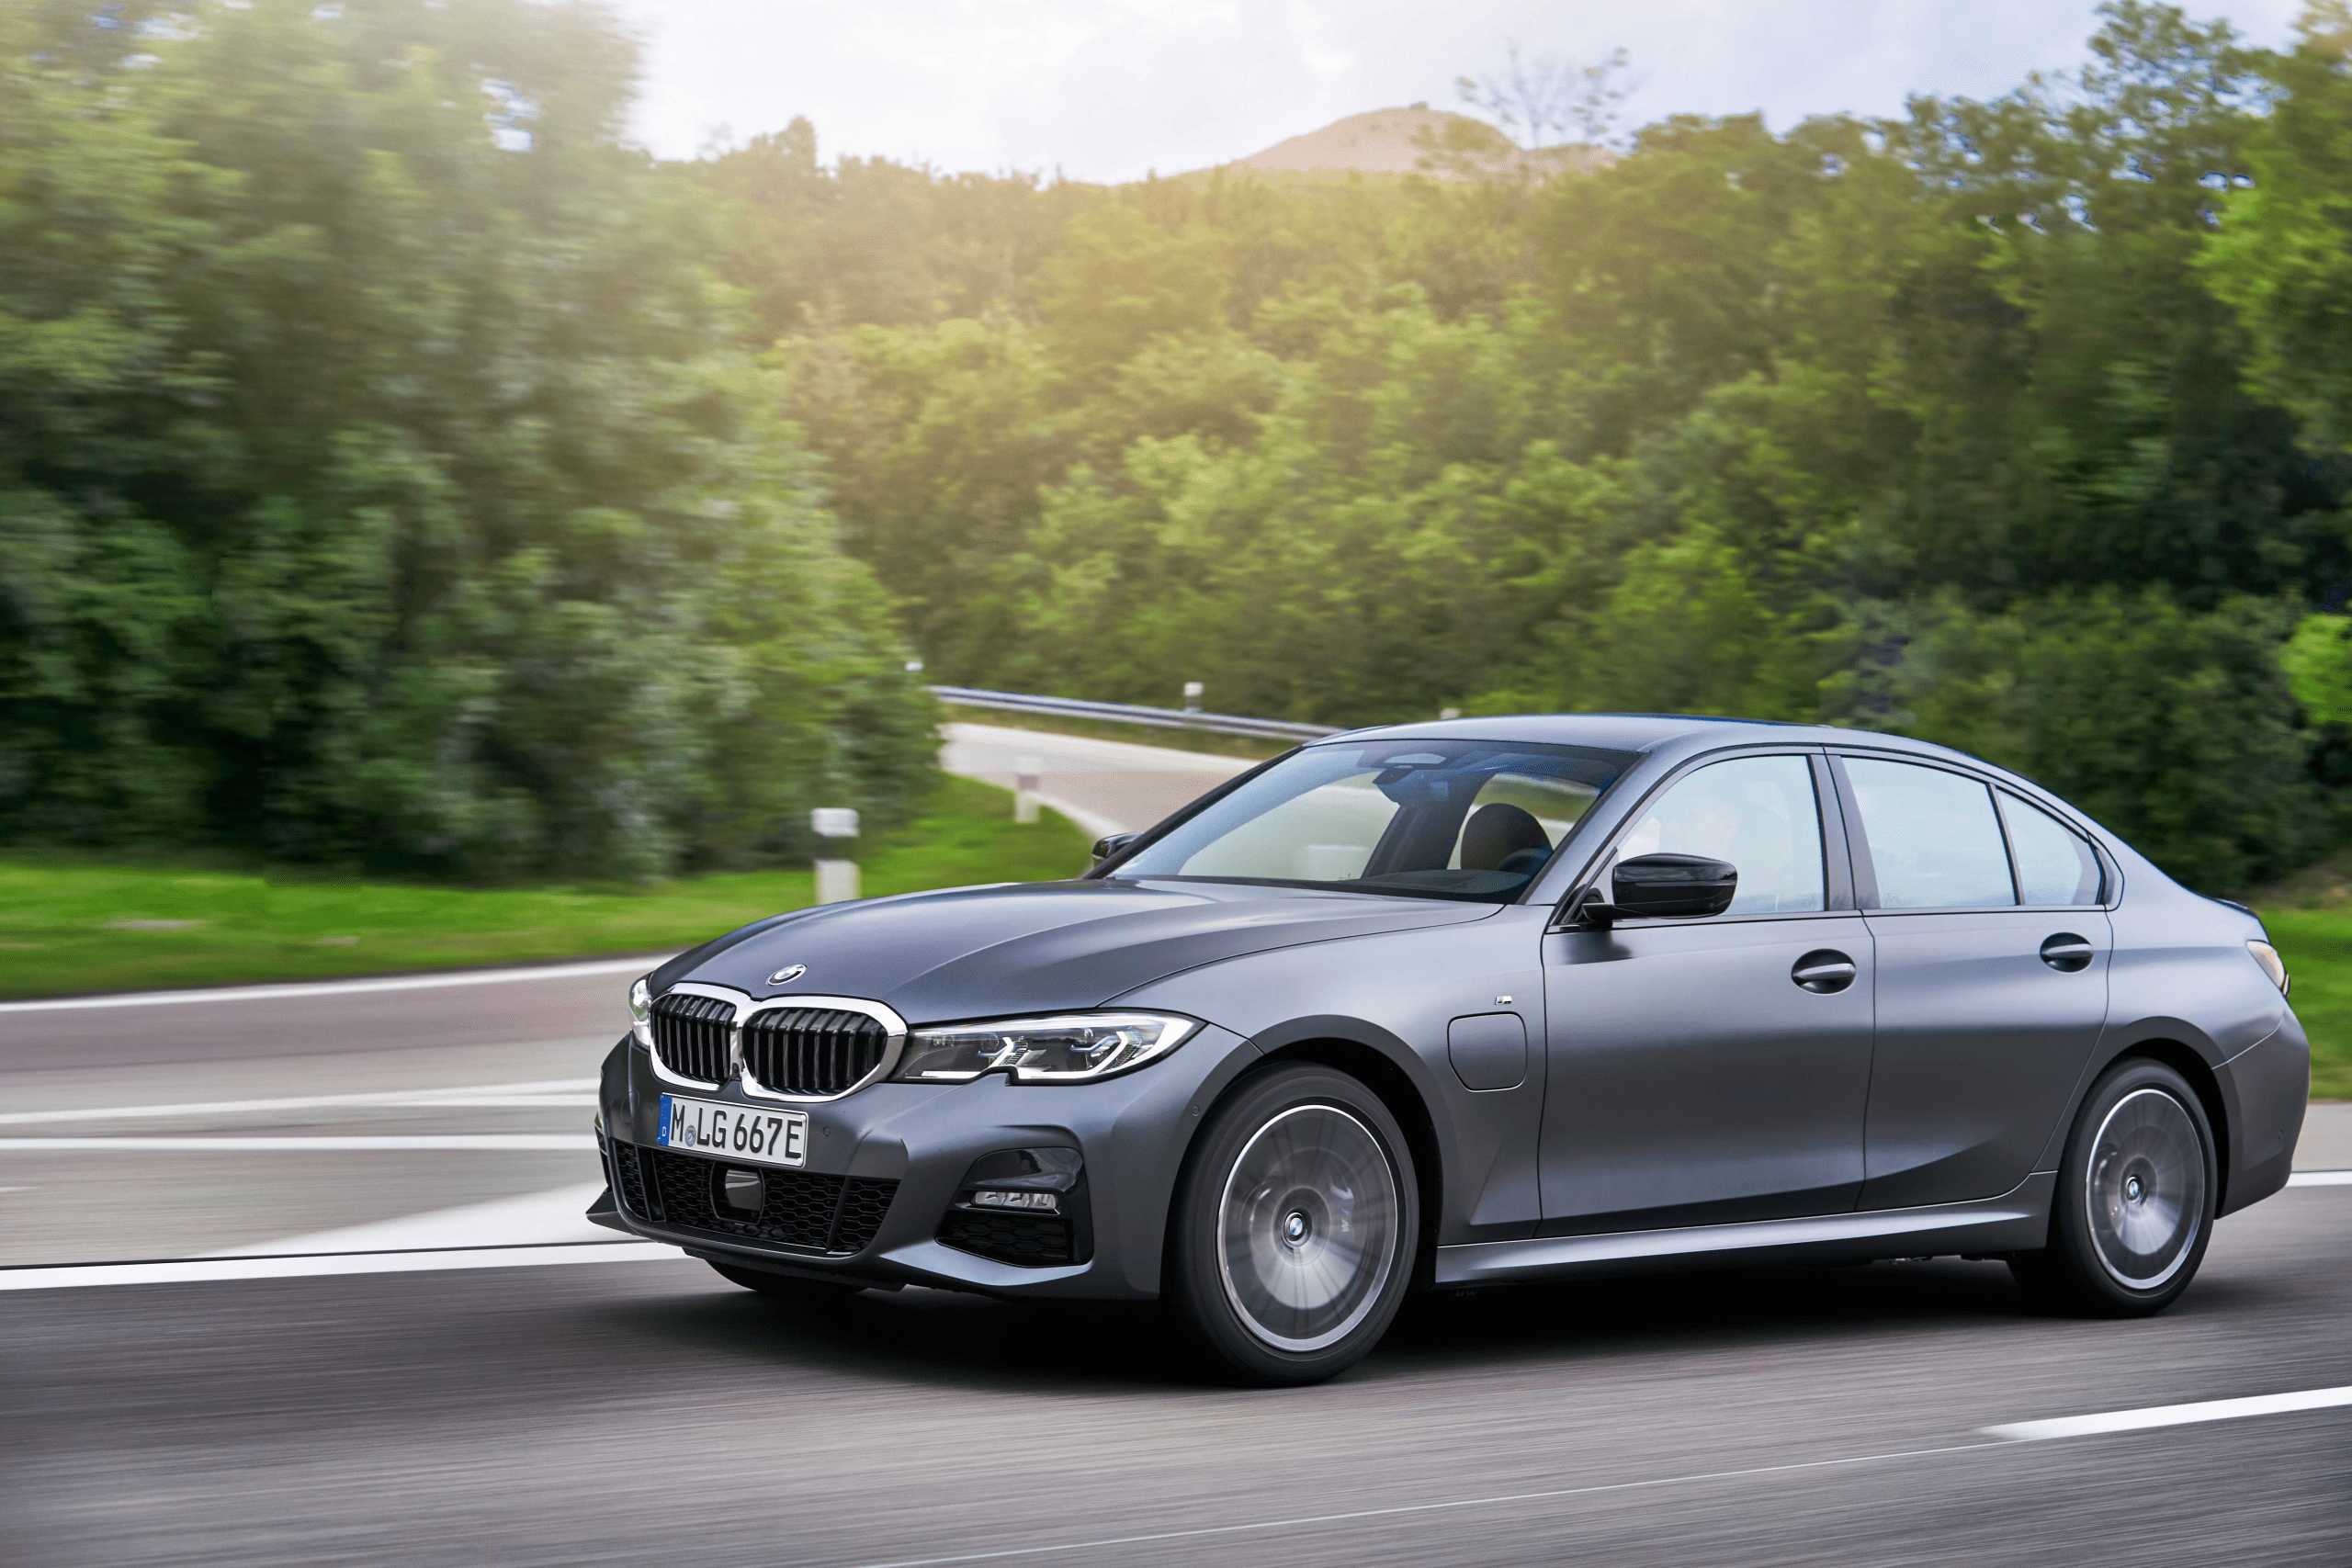 2020 Bmw 750li Xdrive First Drive In 2020 With Images Bmw Bmw 5 Series First Drive